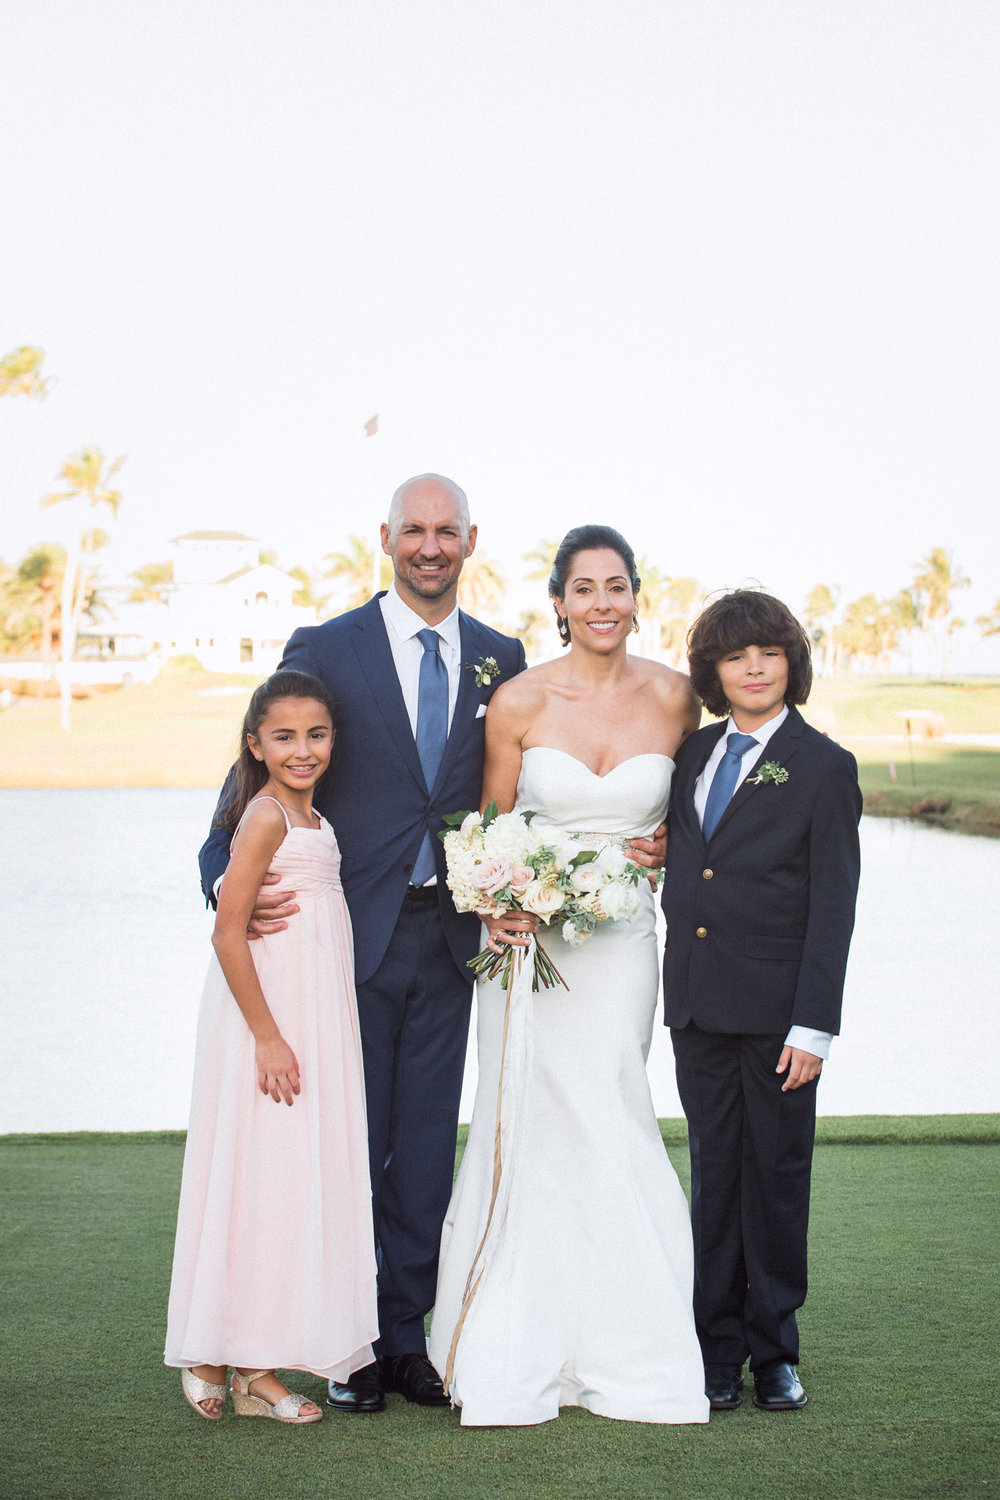 Family photos on the wedding day at Gasparilla Club